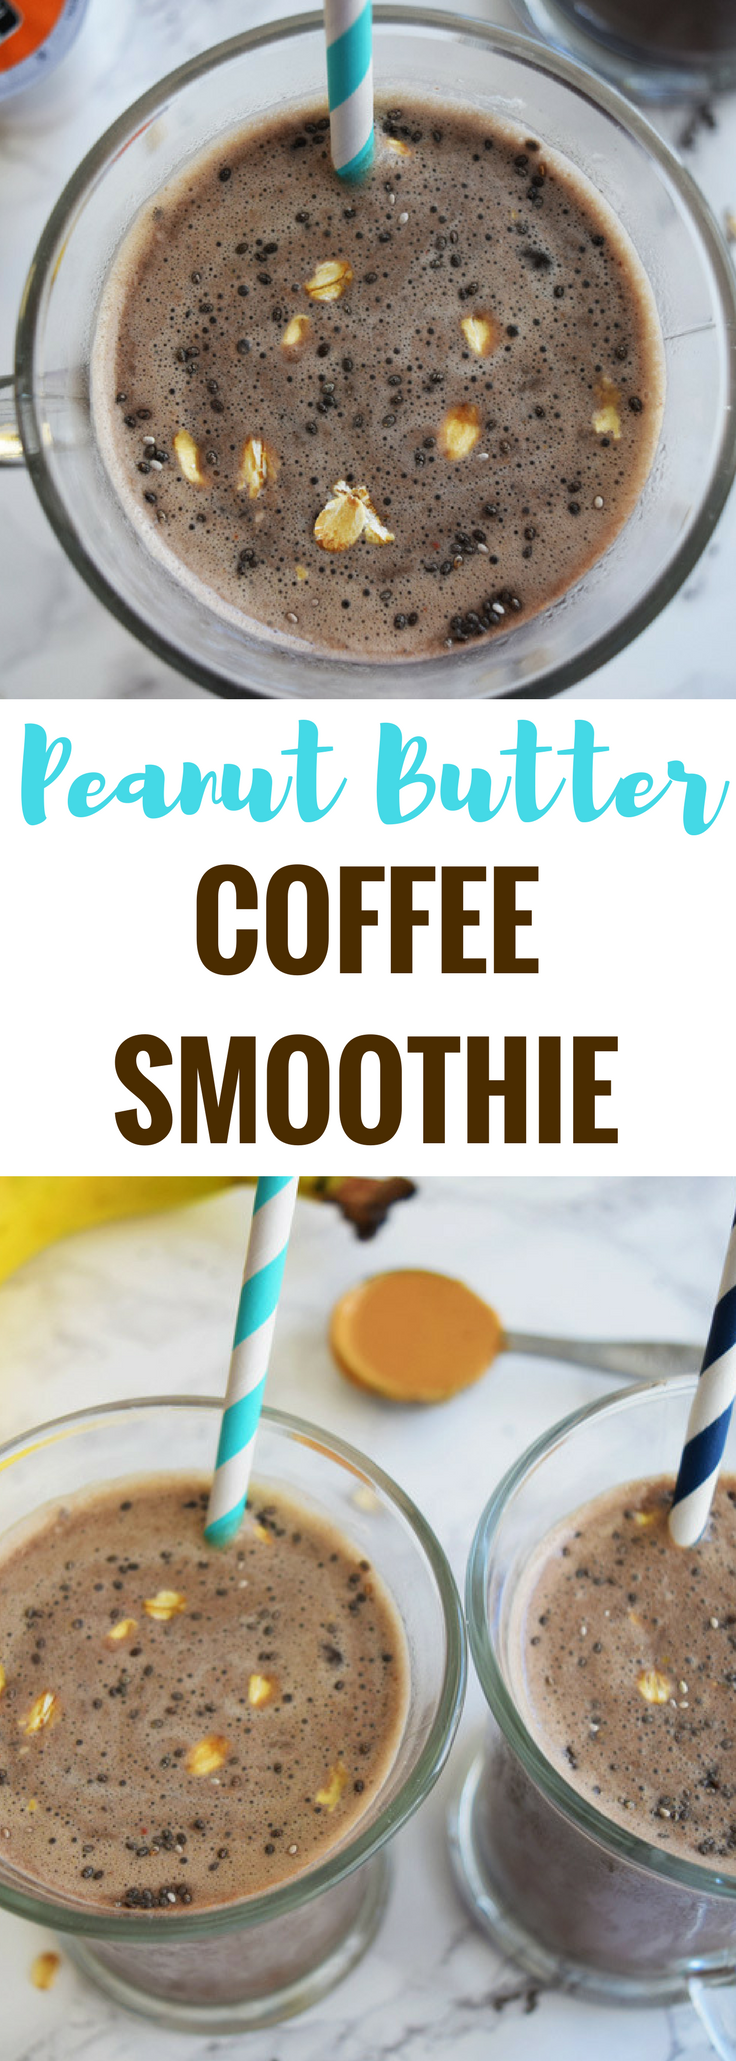 A delicious combination of peanut butter, chocolate, banana and coffee for a refreshing morning smoothie with a punch of energy!